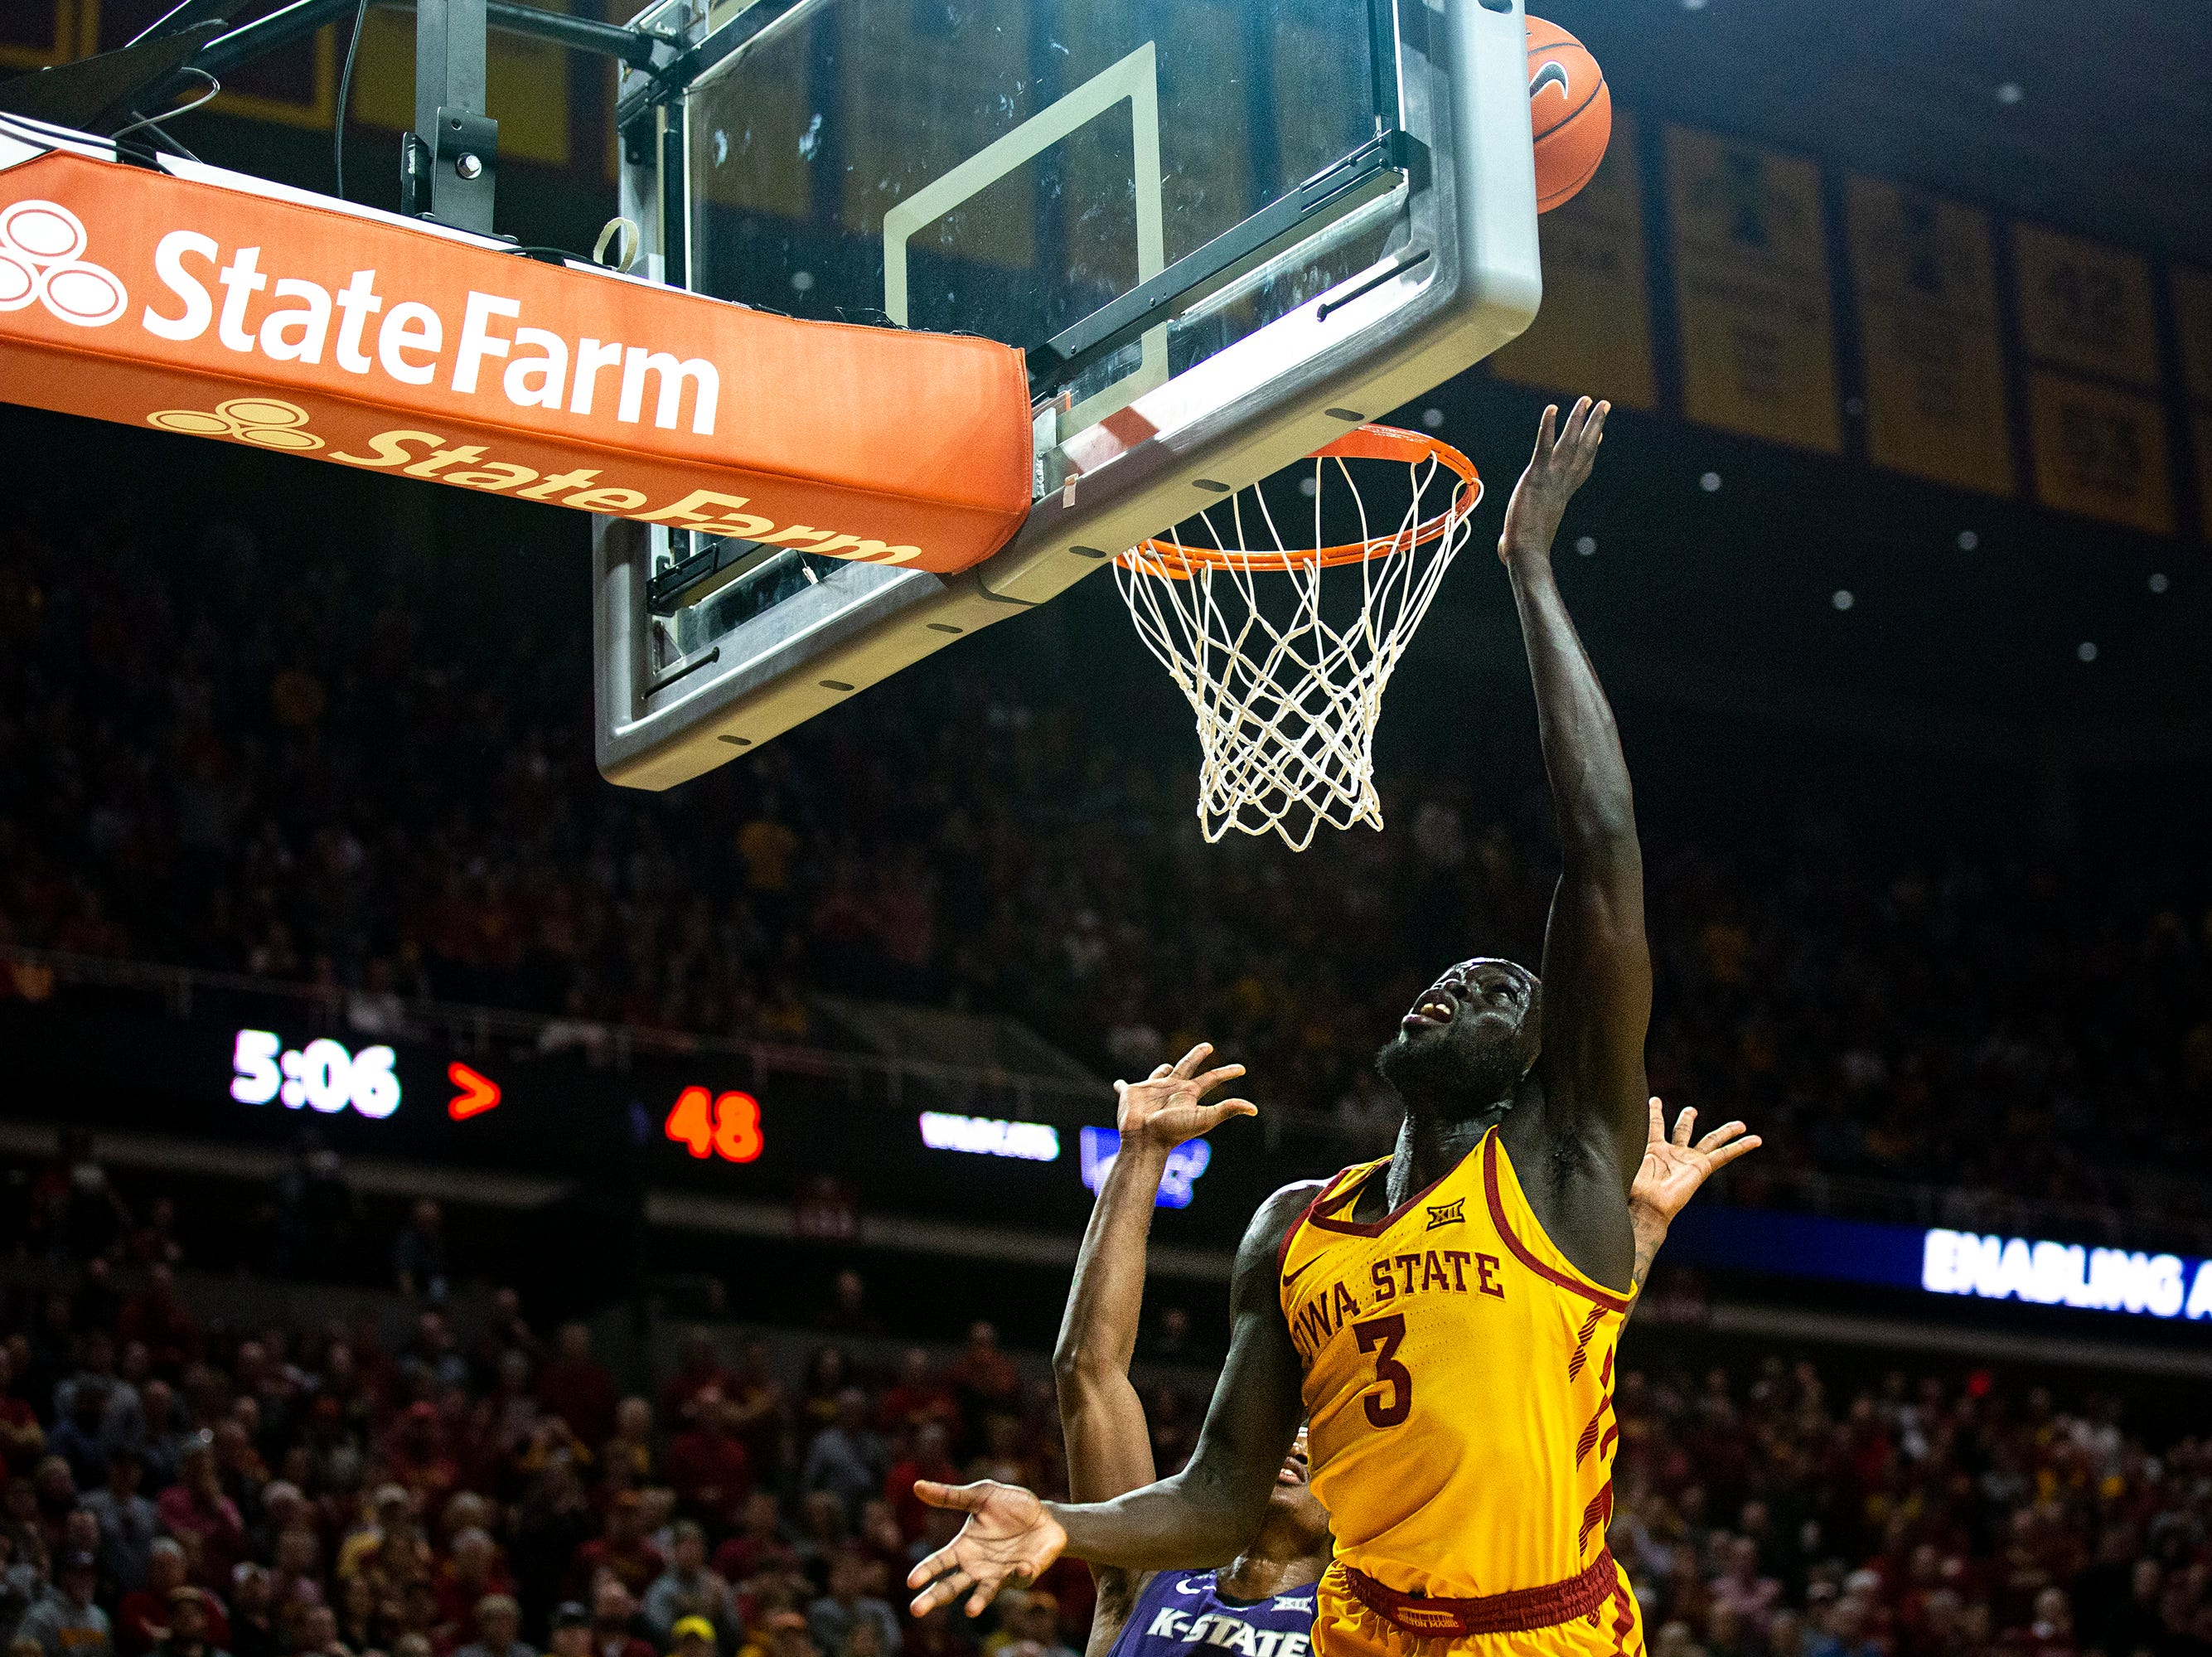 Iowa State's Marial Shayok shoots the ball during the Iowa State men's basketball game against Kansas State on Saturday, Jan. 12, 2019, in Hilton Coliseum. The Cyclones lost to KSU by one point, 58-57.